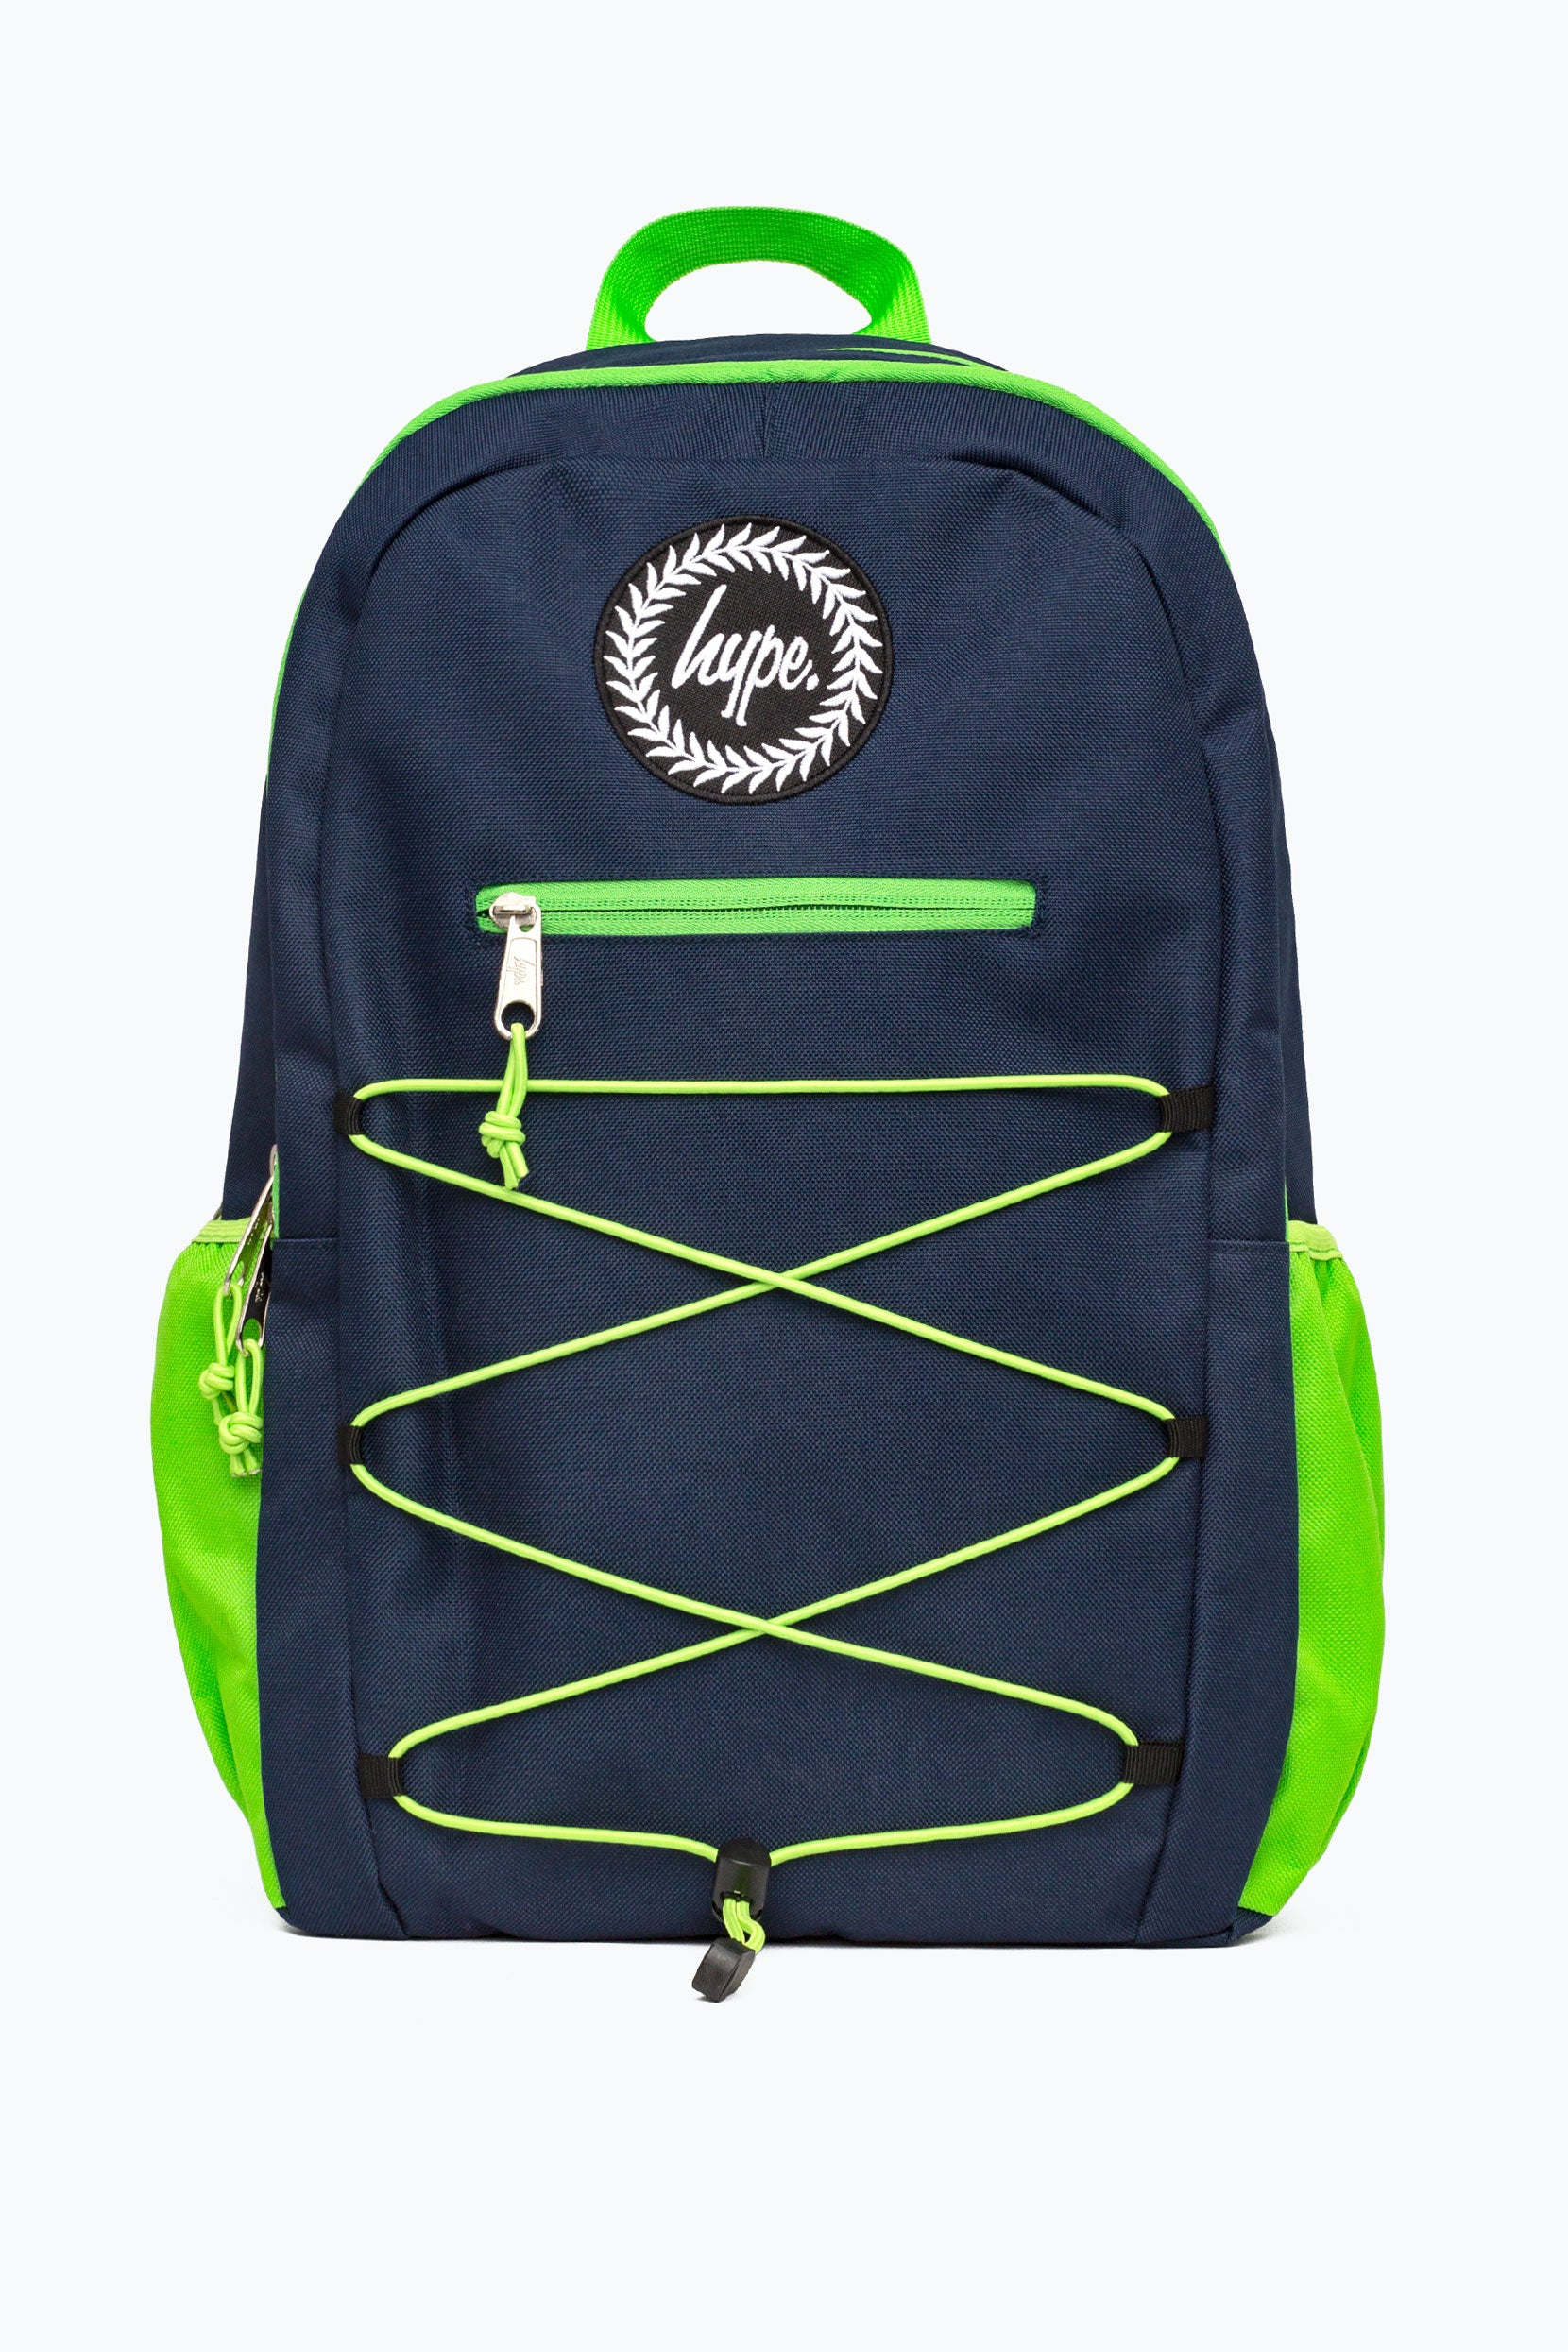 a158bd45ac88 HYPE NAVY GREEN NEON FLASH MAXI BACKPACK – JustHype ltd